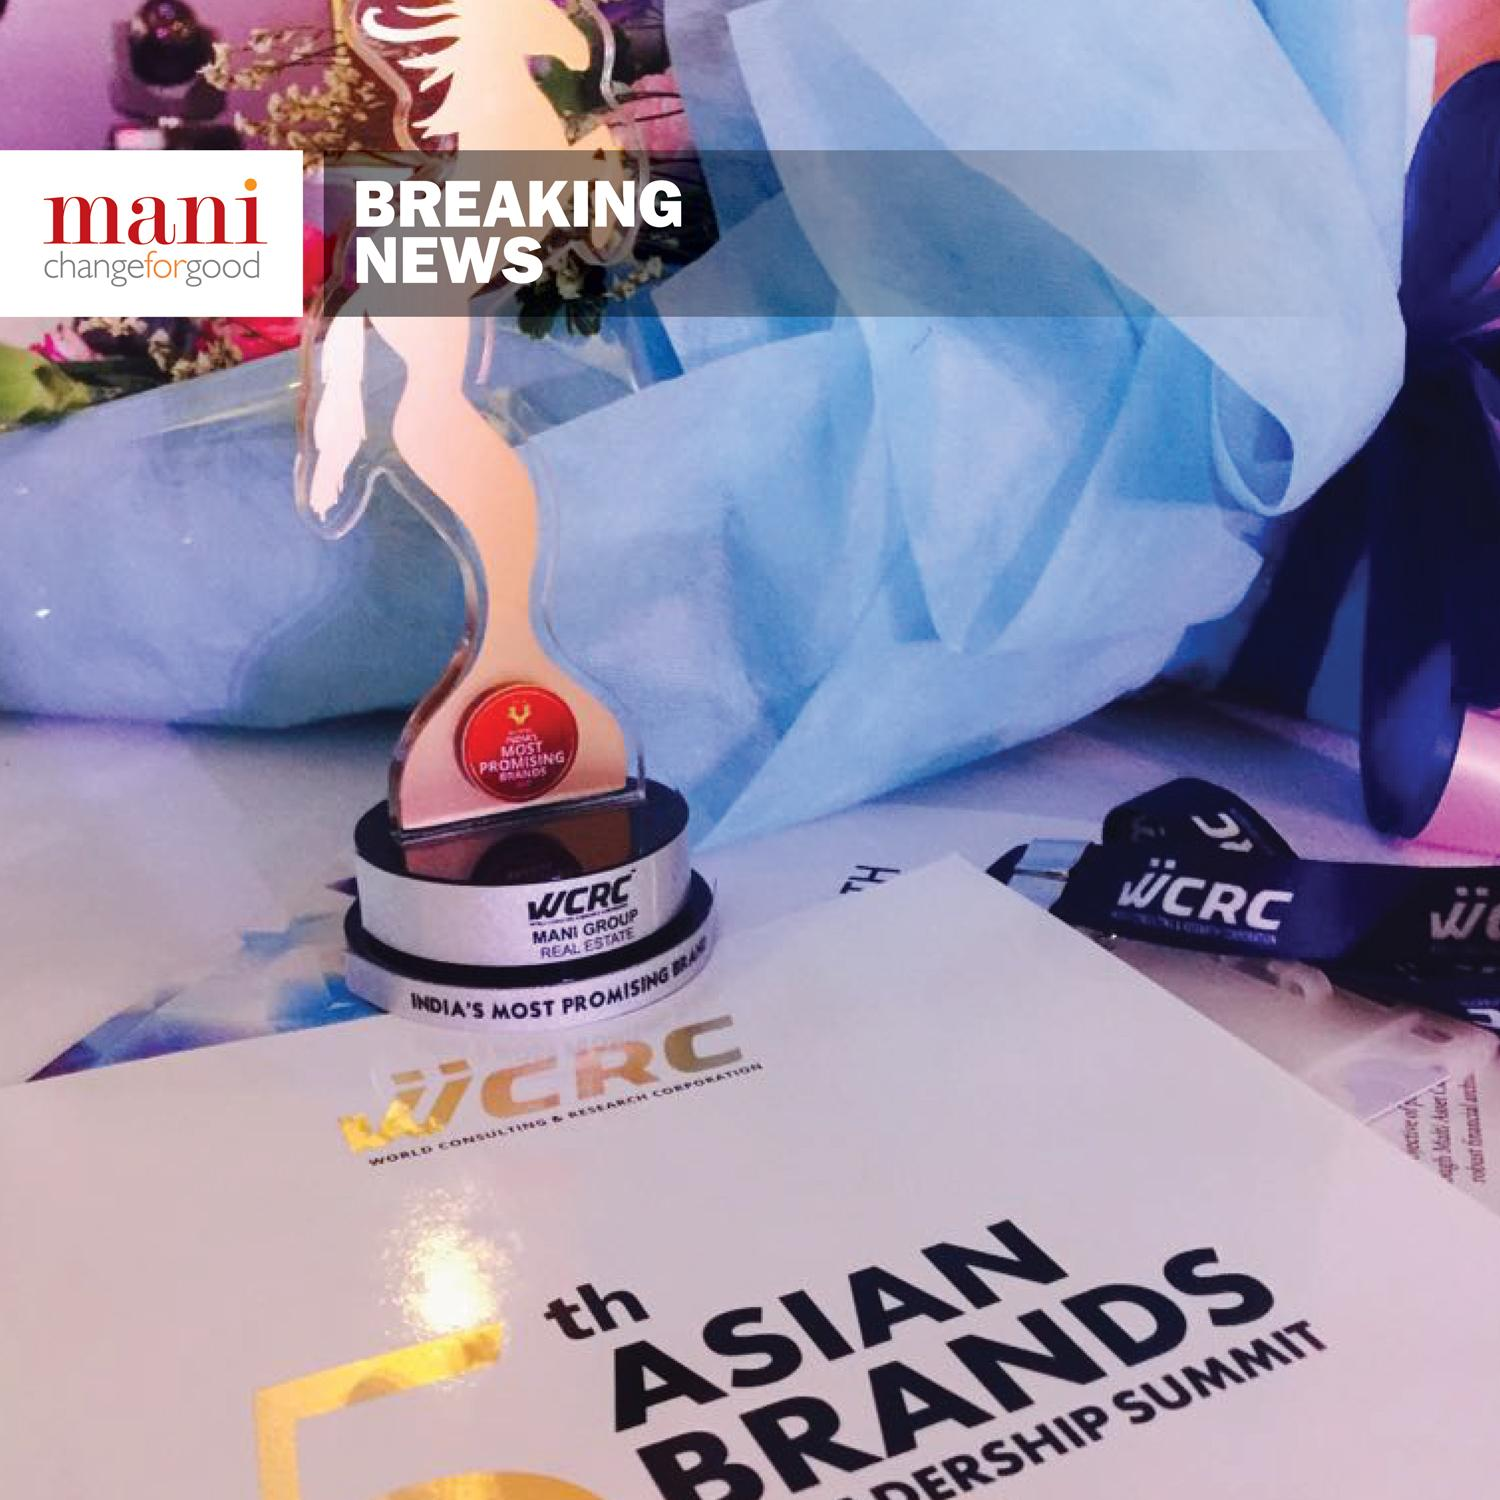 Mani Group awarded for being the Most Promising Brand in India at the WCRC 5th Asian Brands Leadership Summit